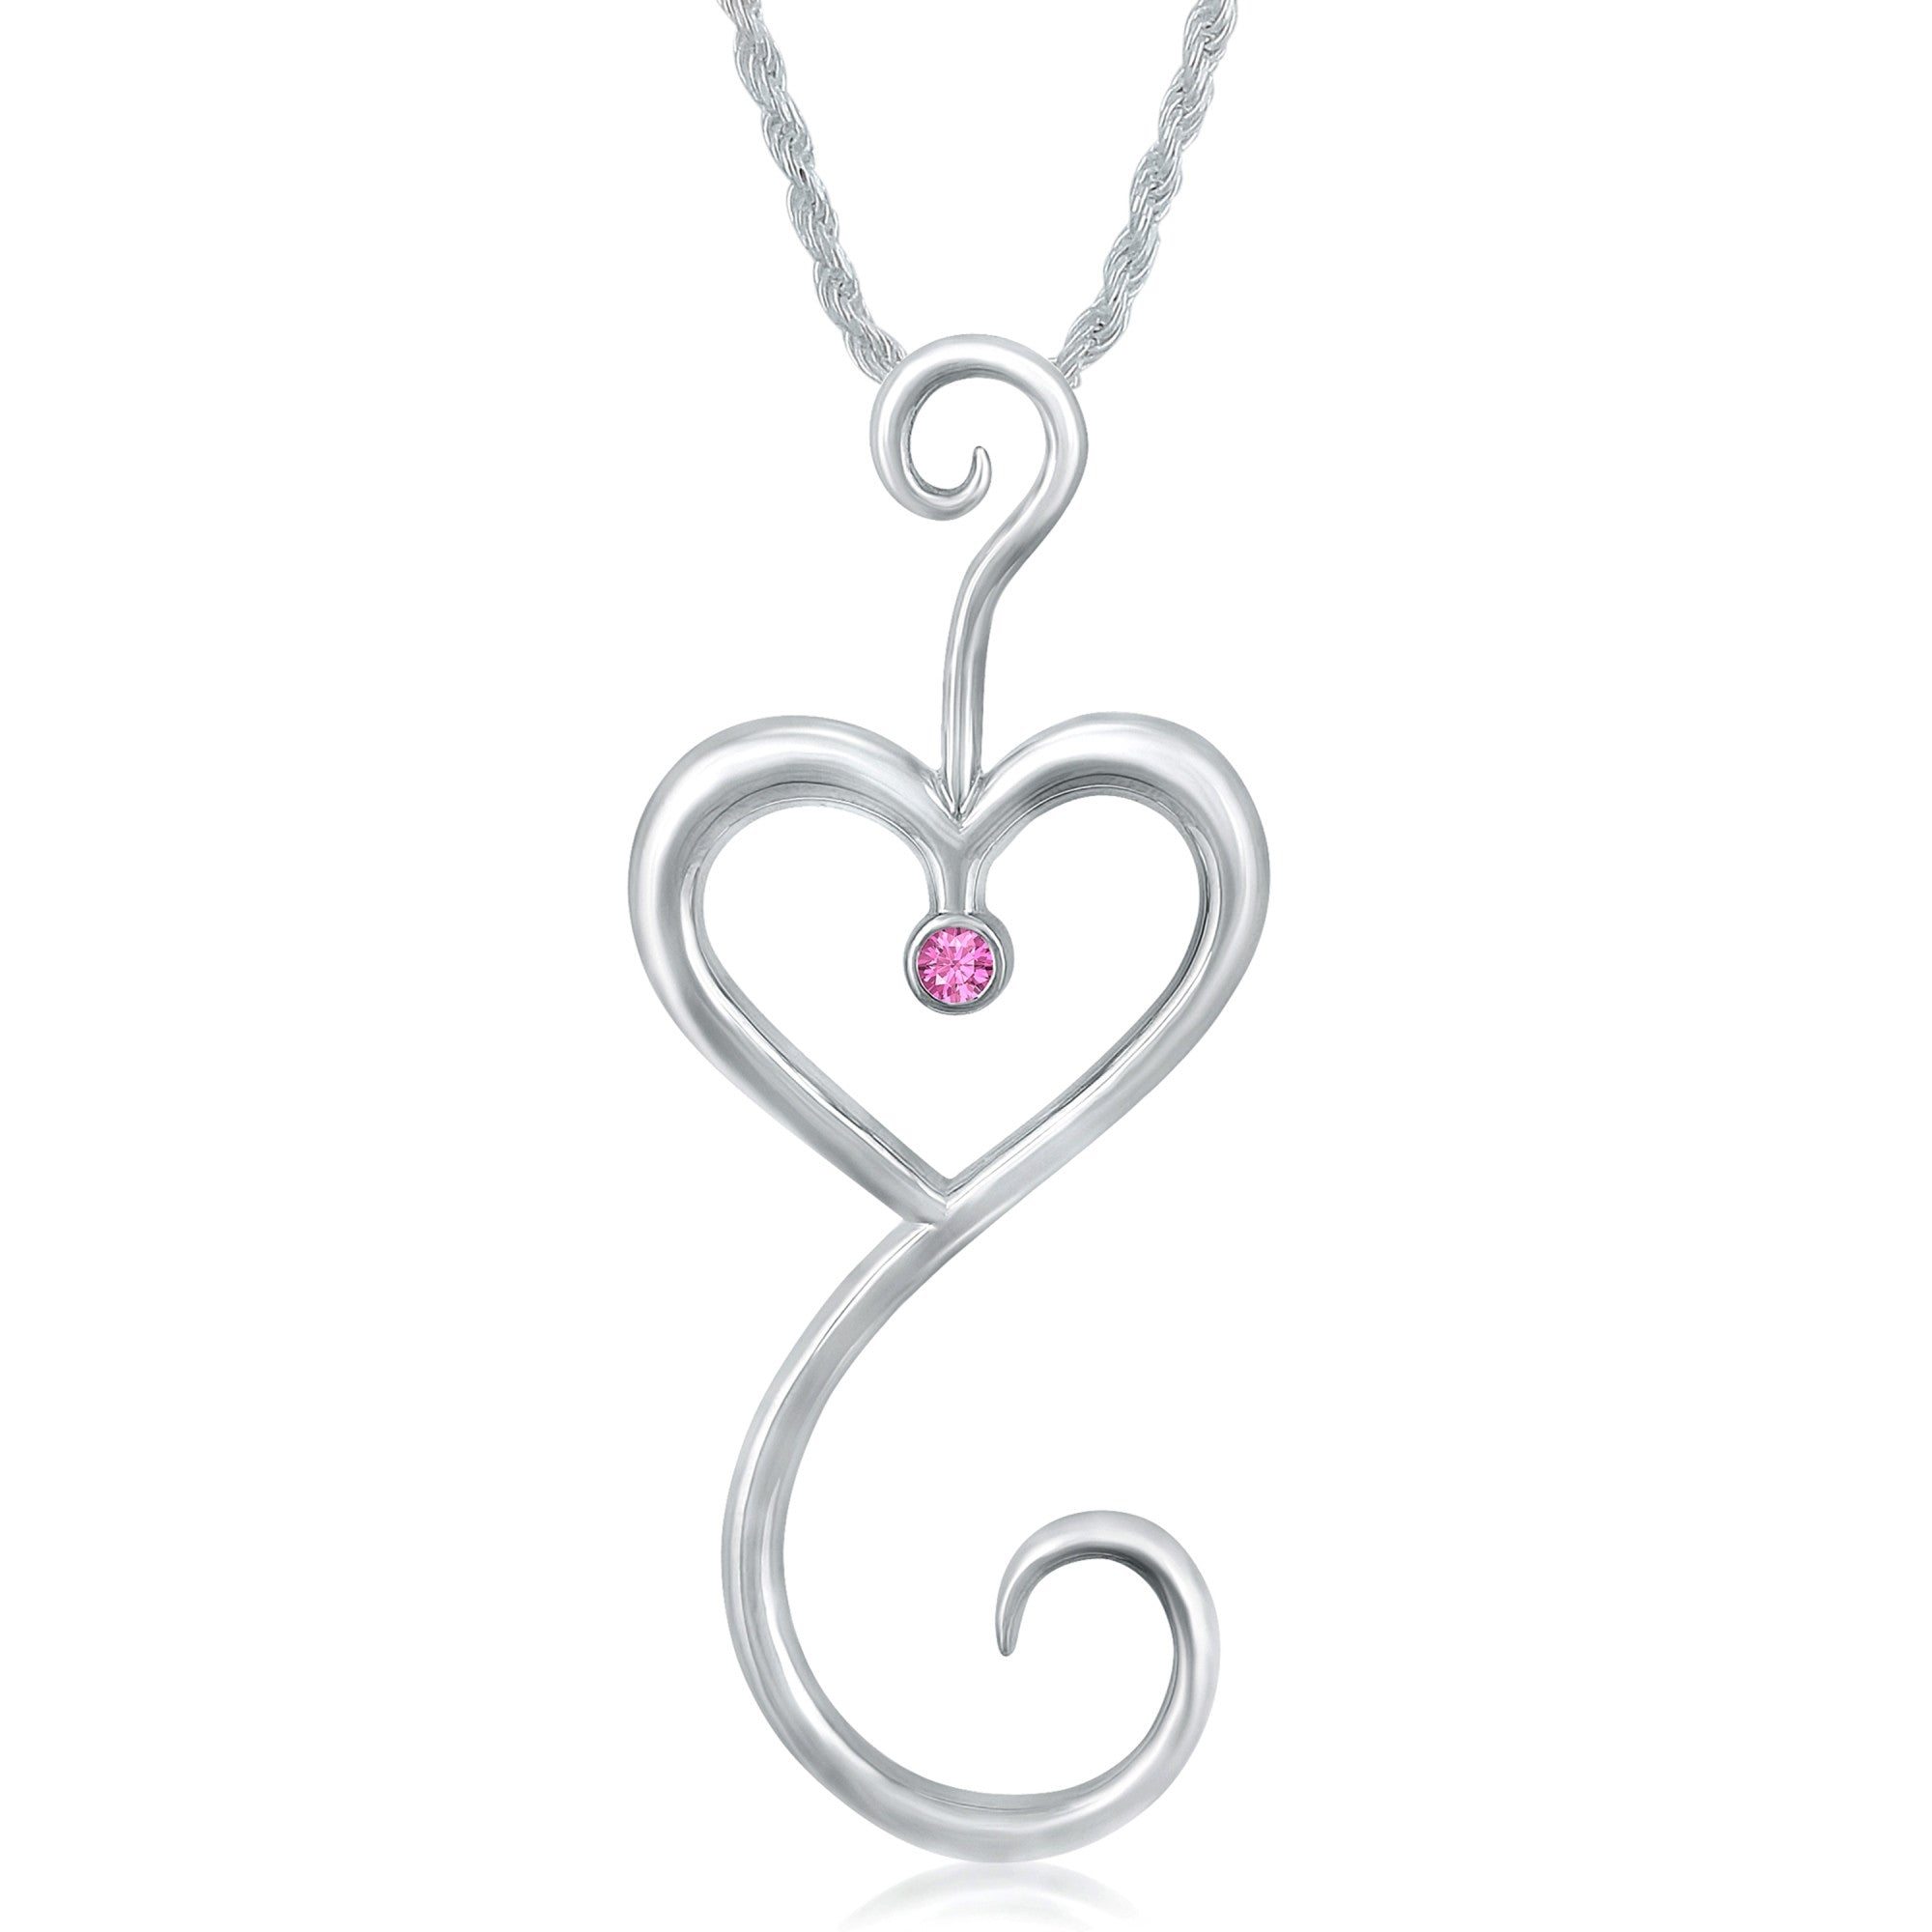 Intrikit Heart - Solid Sterling *Non Tarnish* Silver .925 with a 3mm Pink Sapphire Center Stone